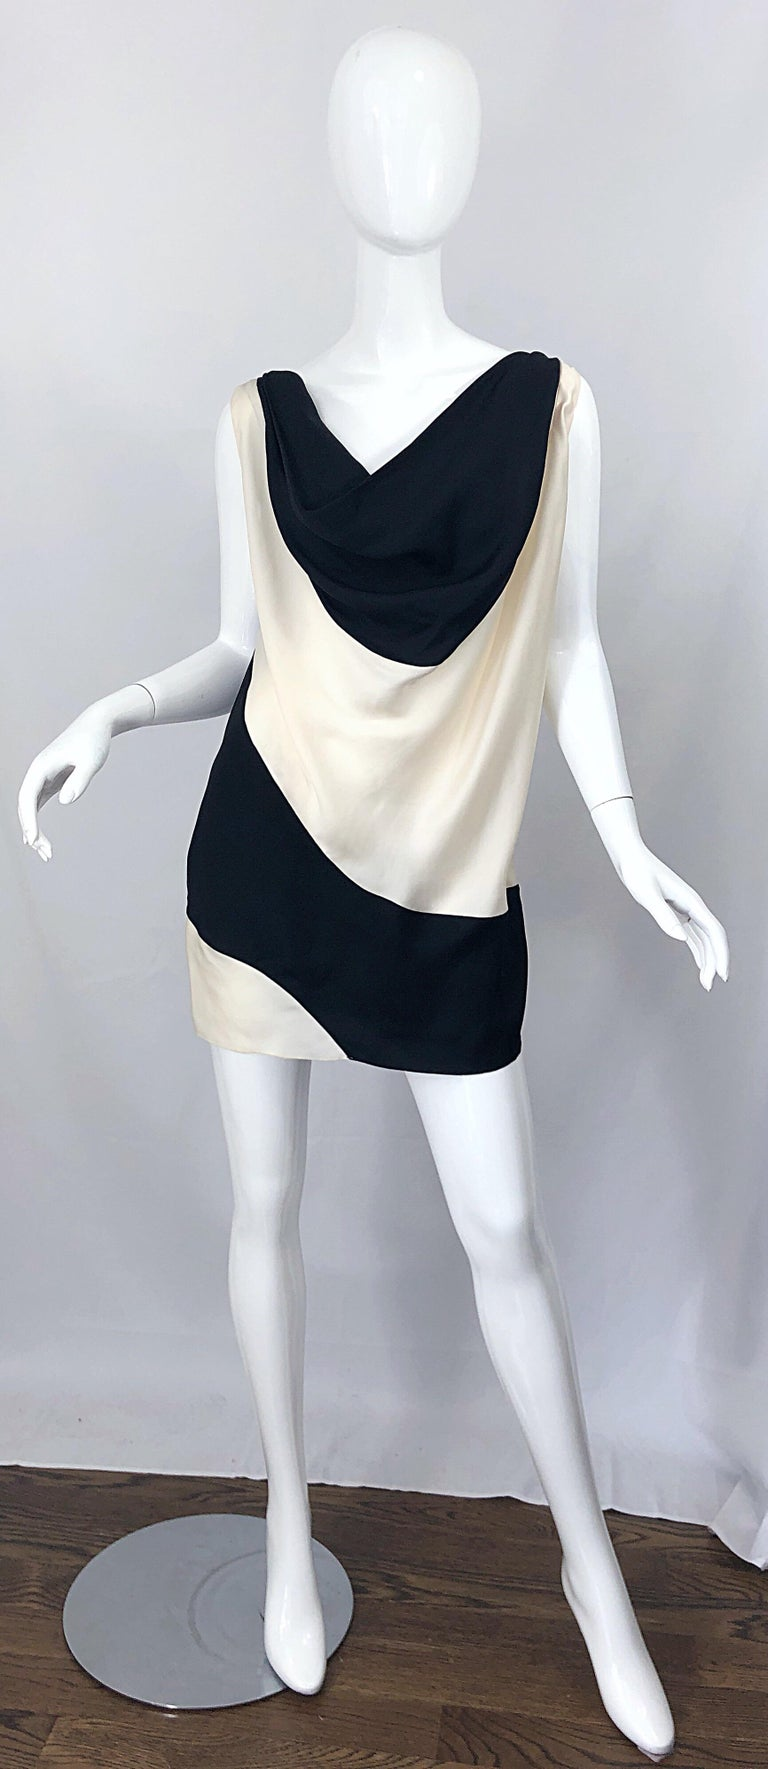 Vintage Donna Karan Runway Collection Black & White Ivory Sz 10 / 12 Tunic Dress For Sale 3